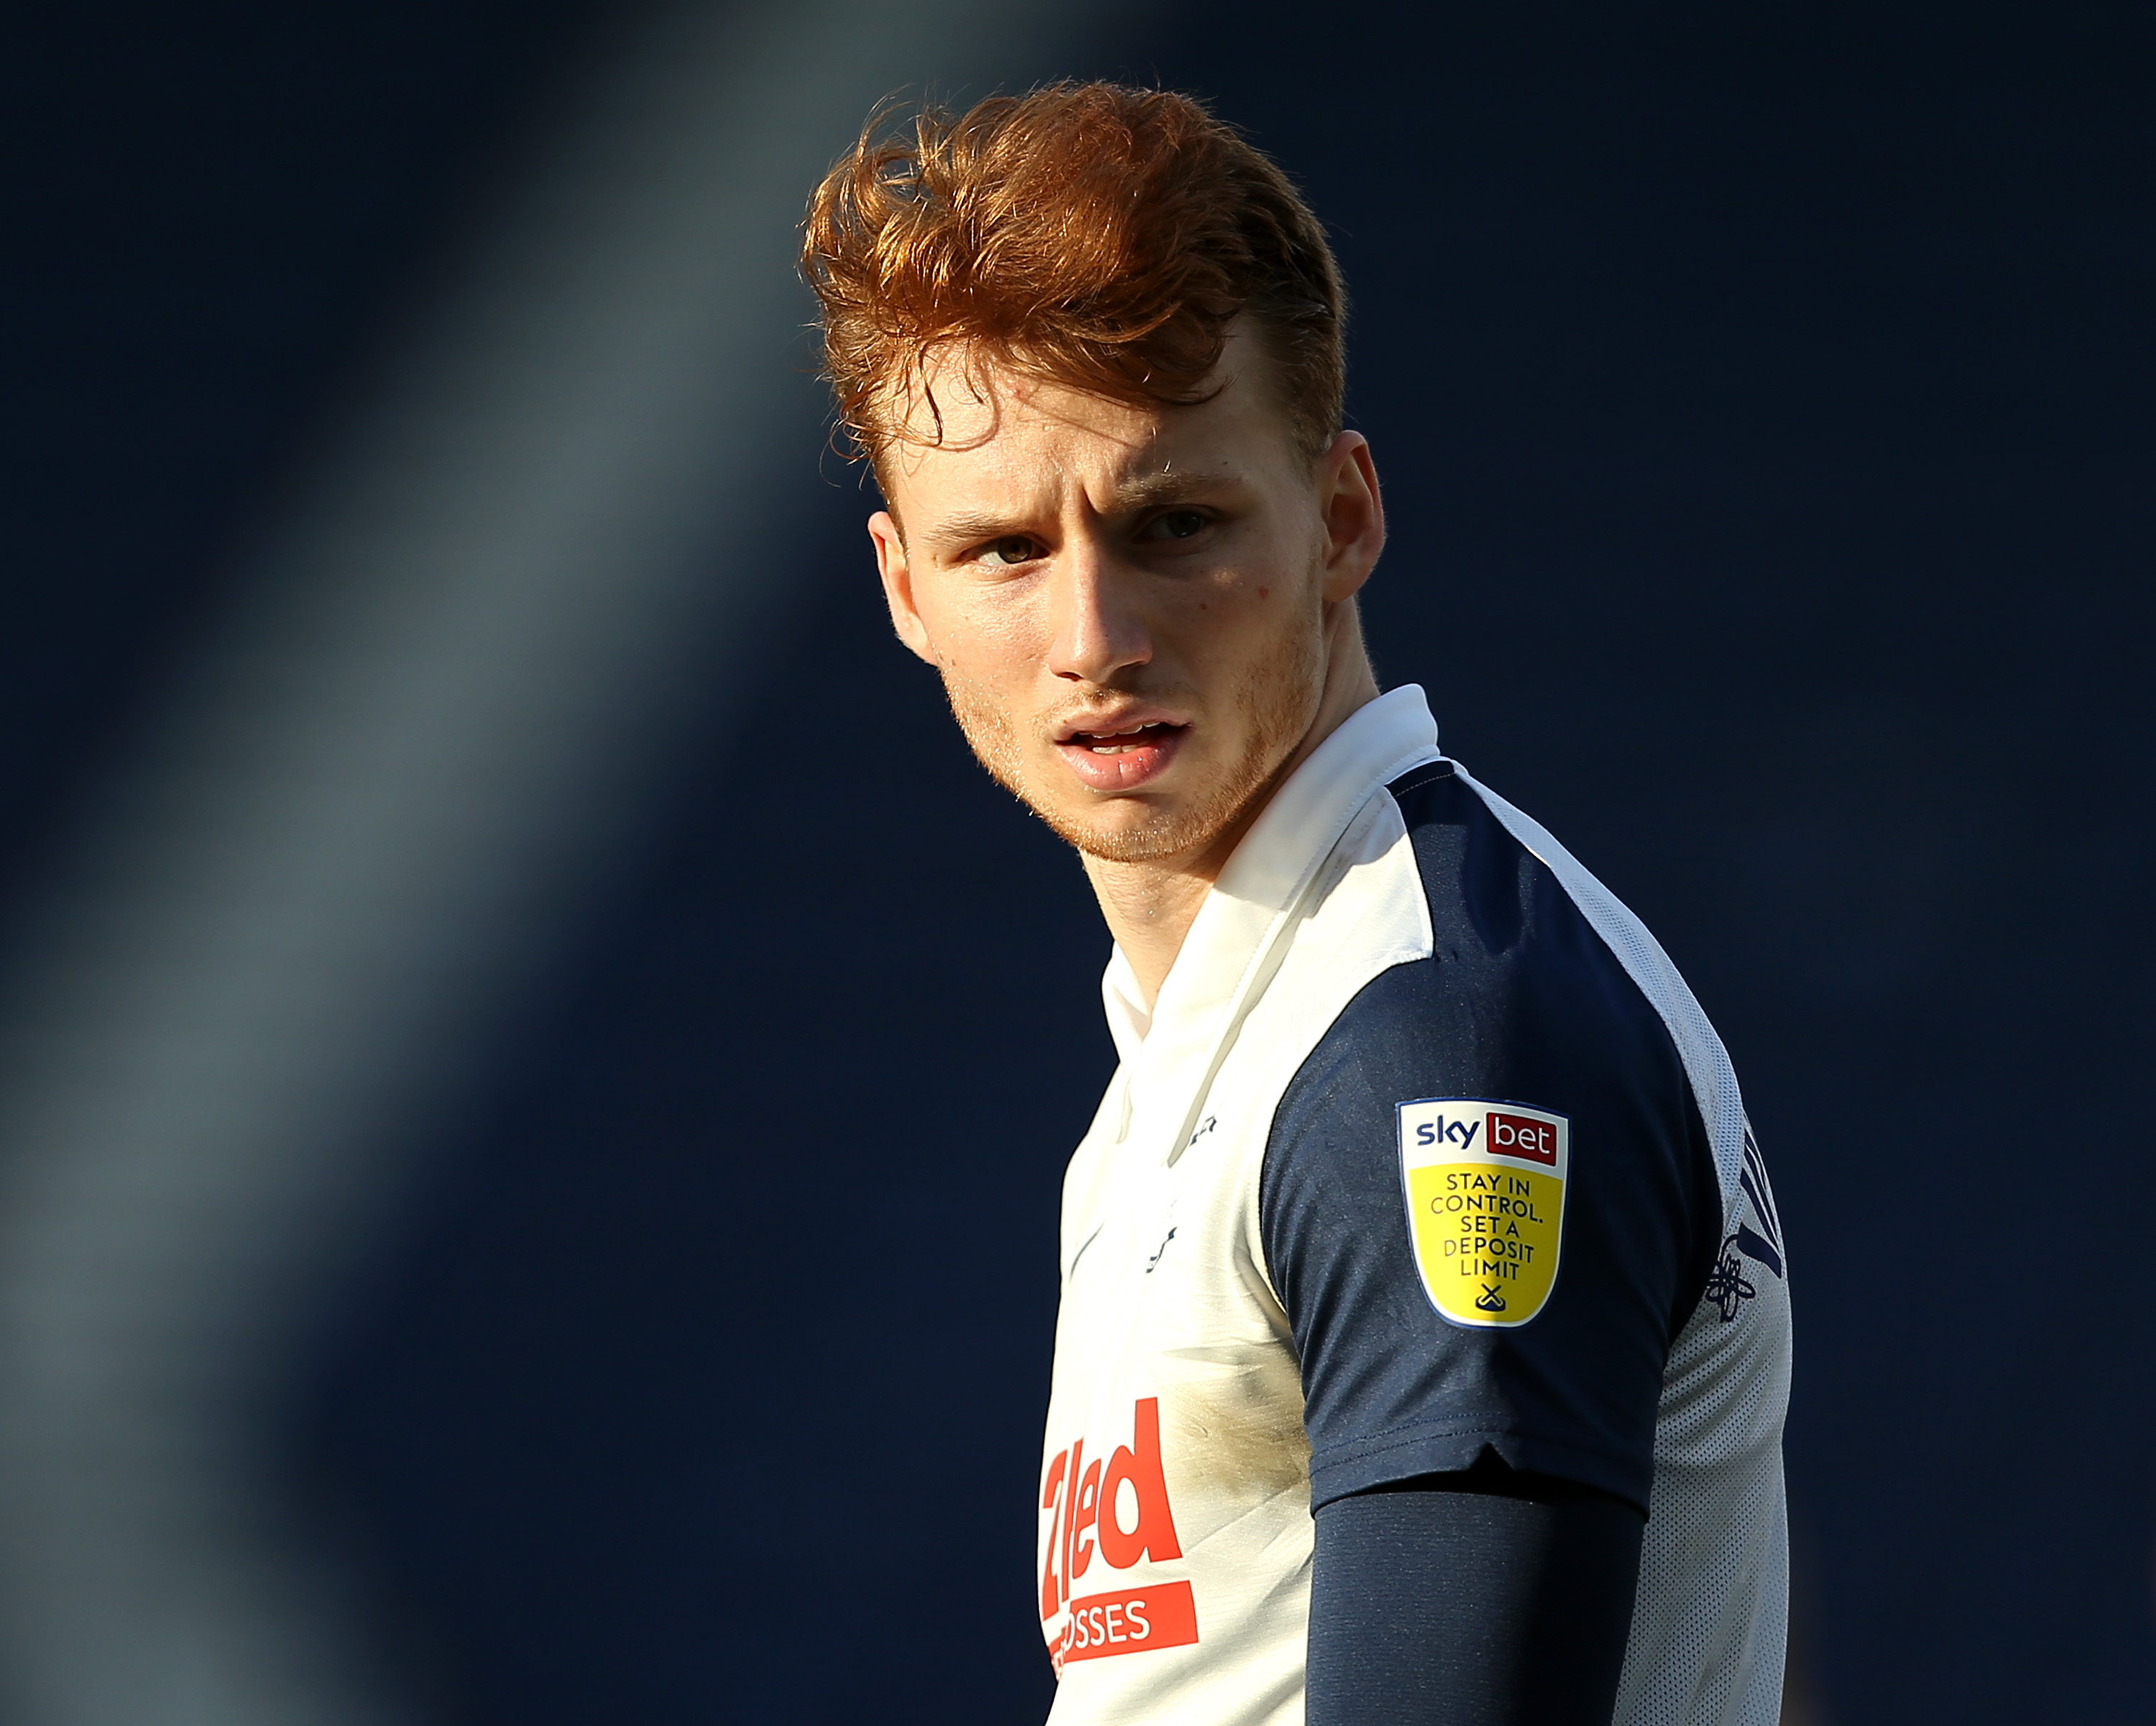 Sepp van den Berg pictured playing for Preston North End against Huddersfield Town in the Championship in February 2021.